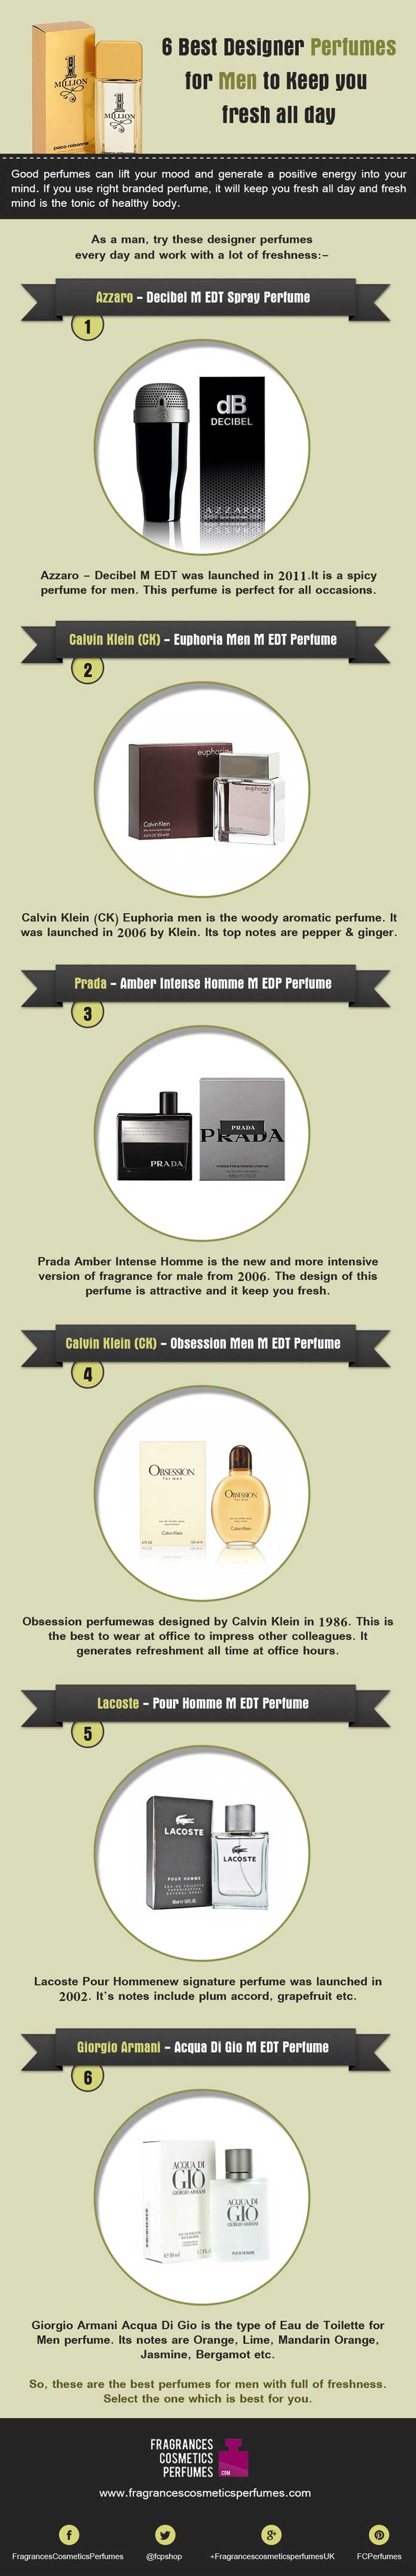 6-Best-Designer-Perfumes-for-Men-to-Keep-you-fresh-all-day